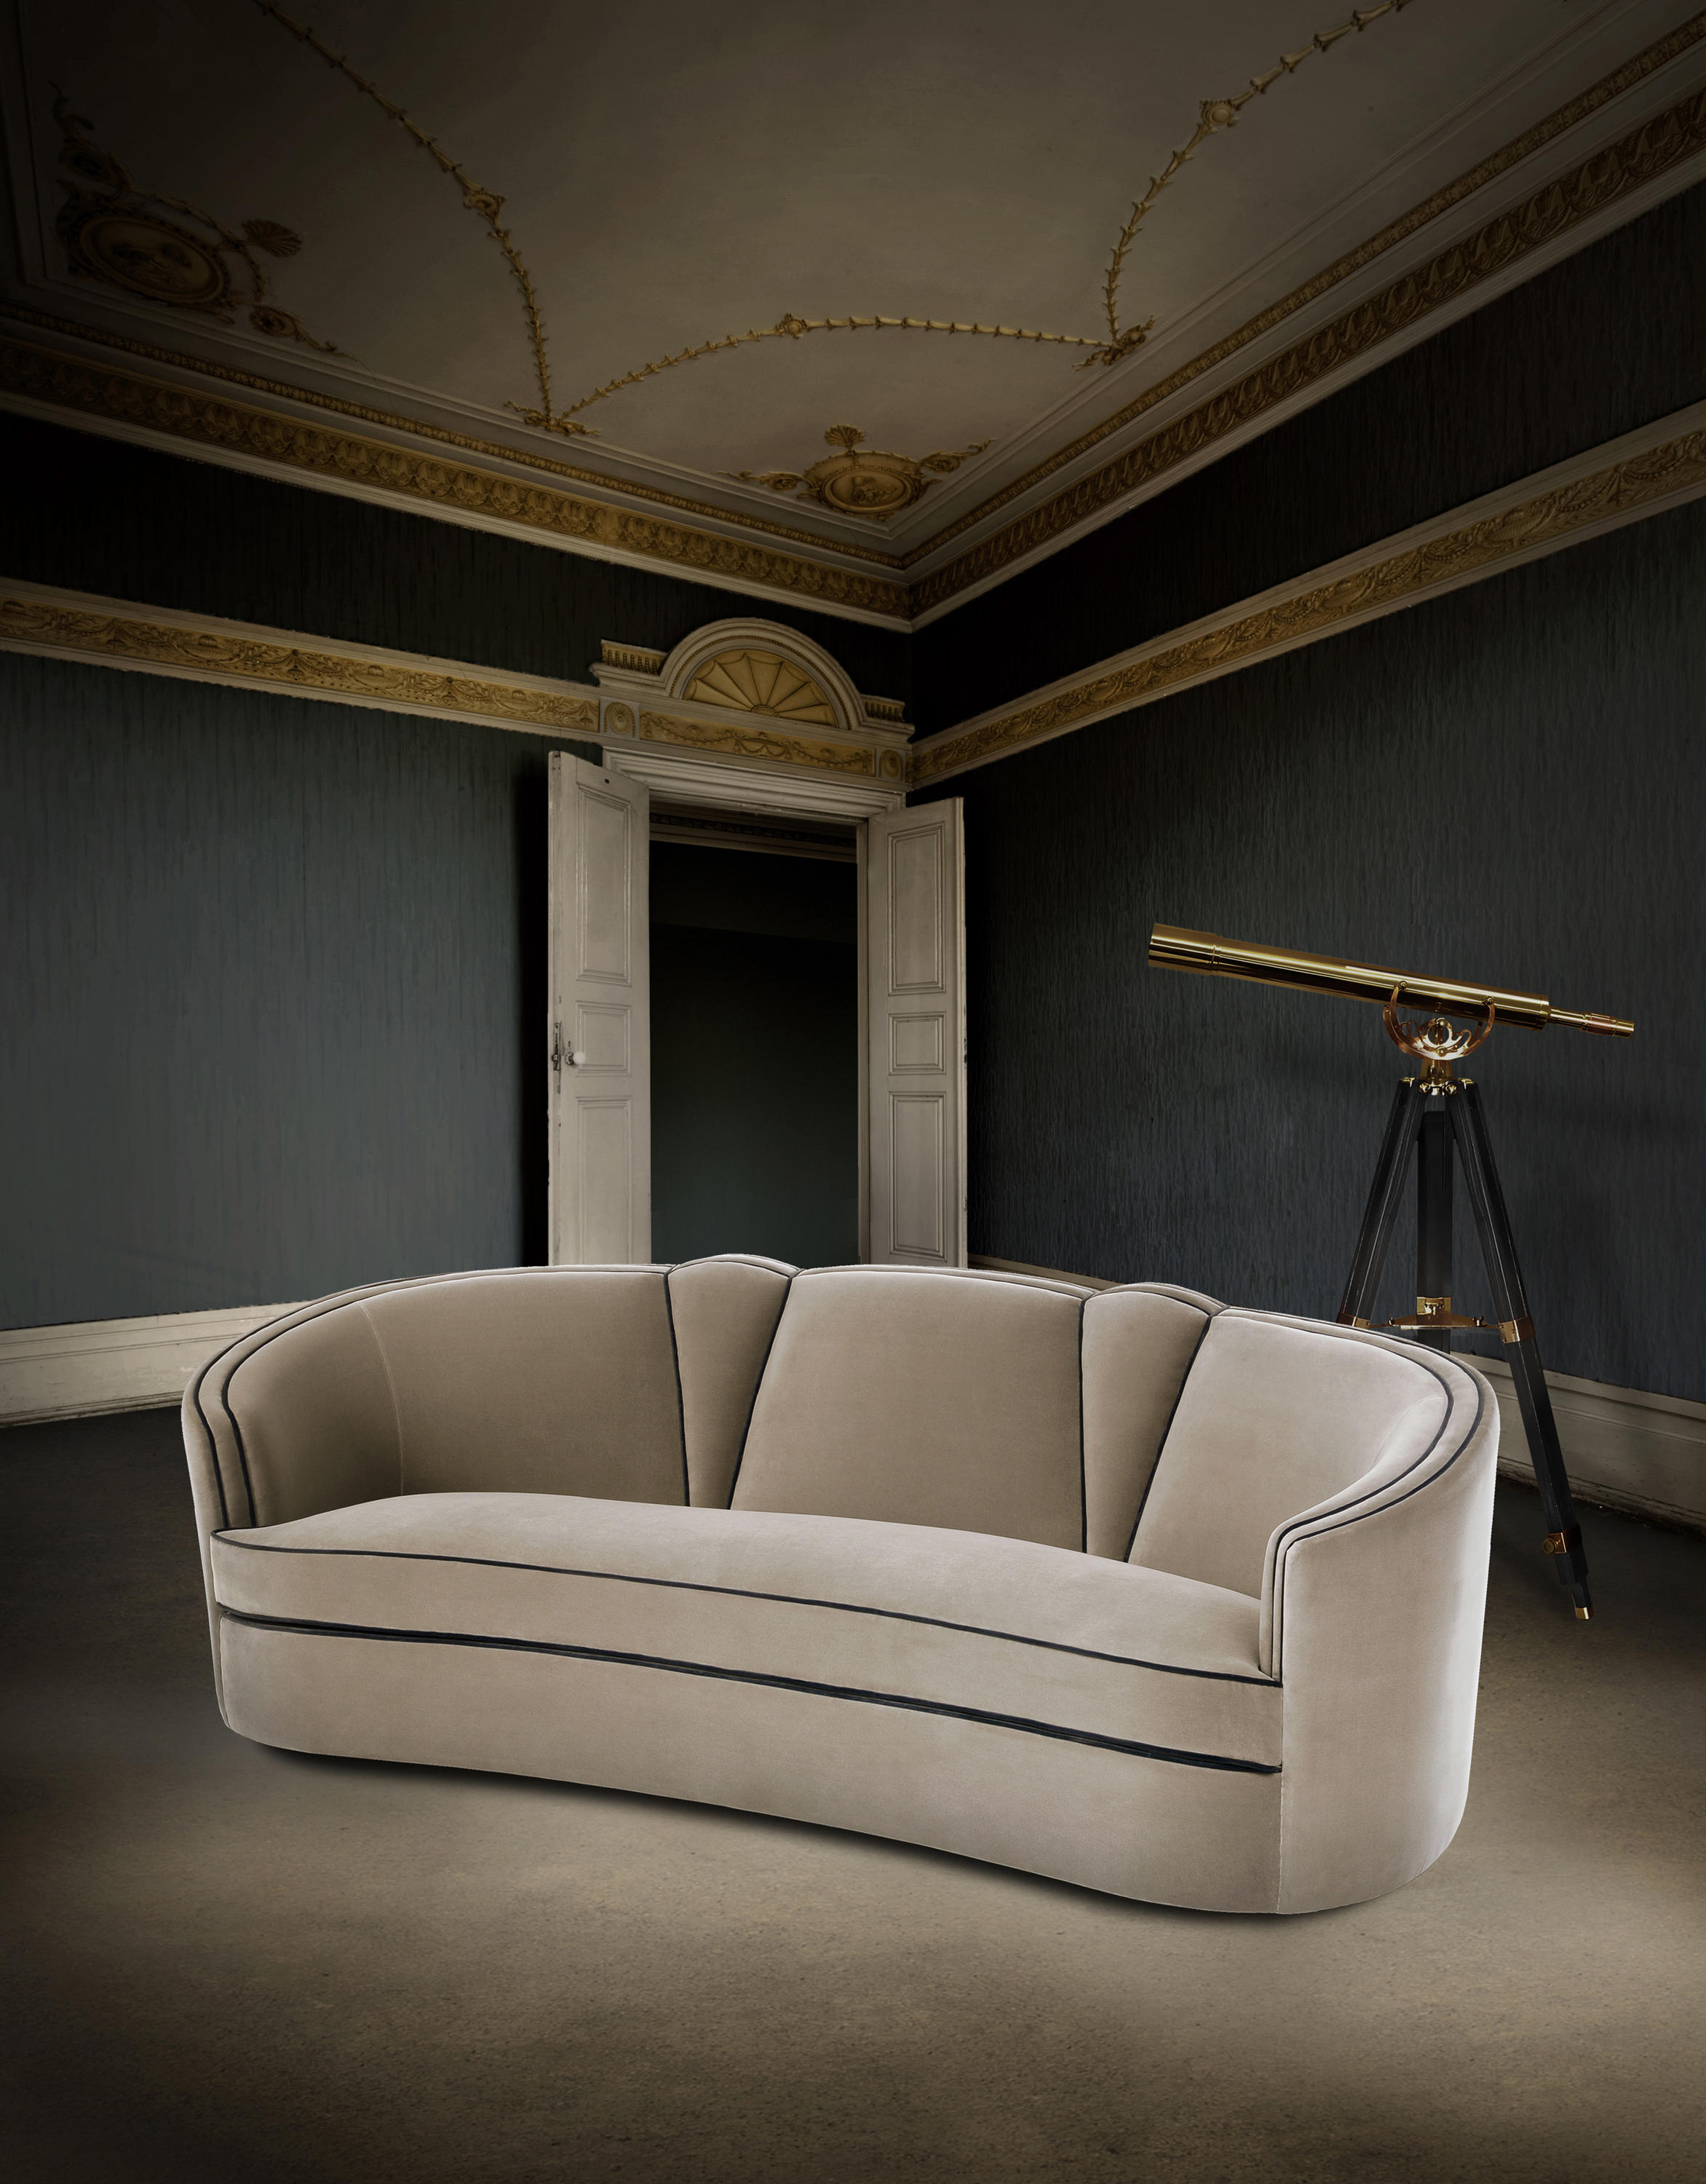 Josephine | Armchair – Armchairs From Munna | Architonic Throughout Josephine Sofa Chairs (Image 6 of 25)